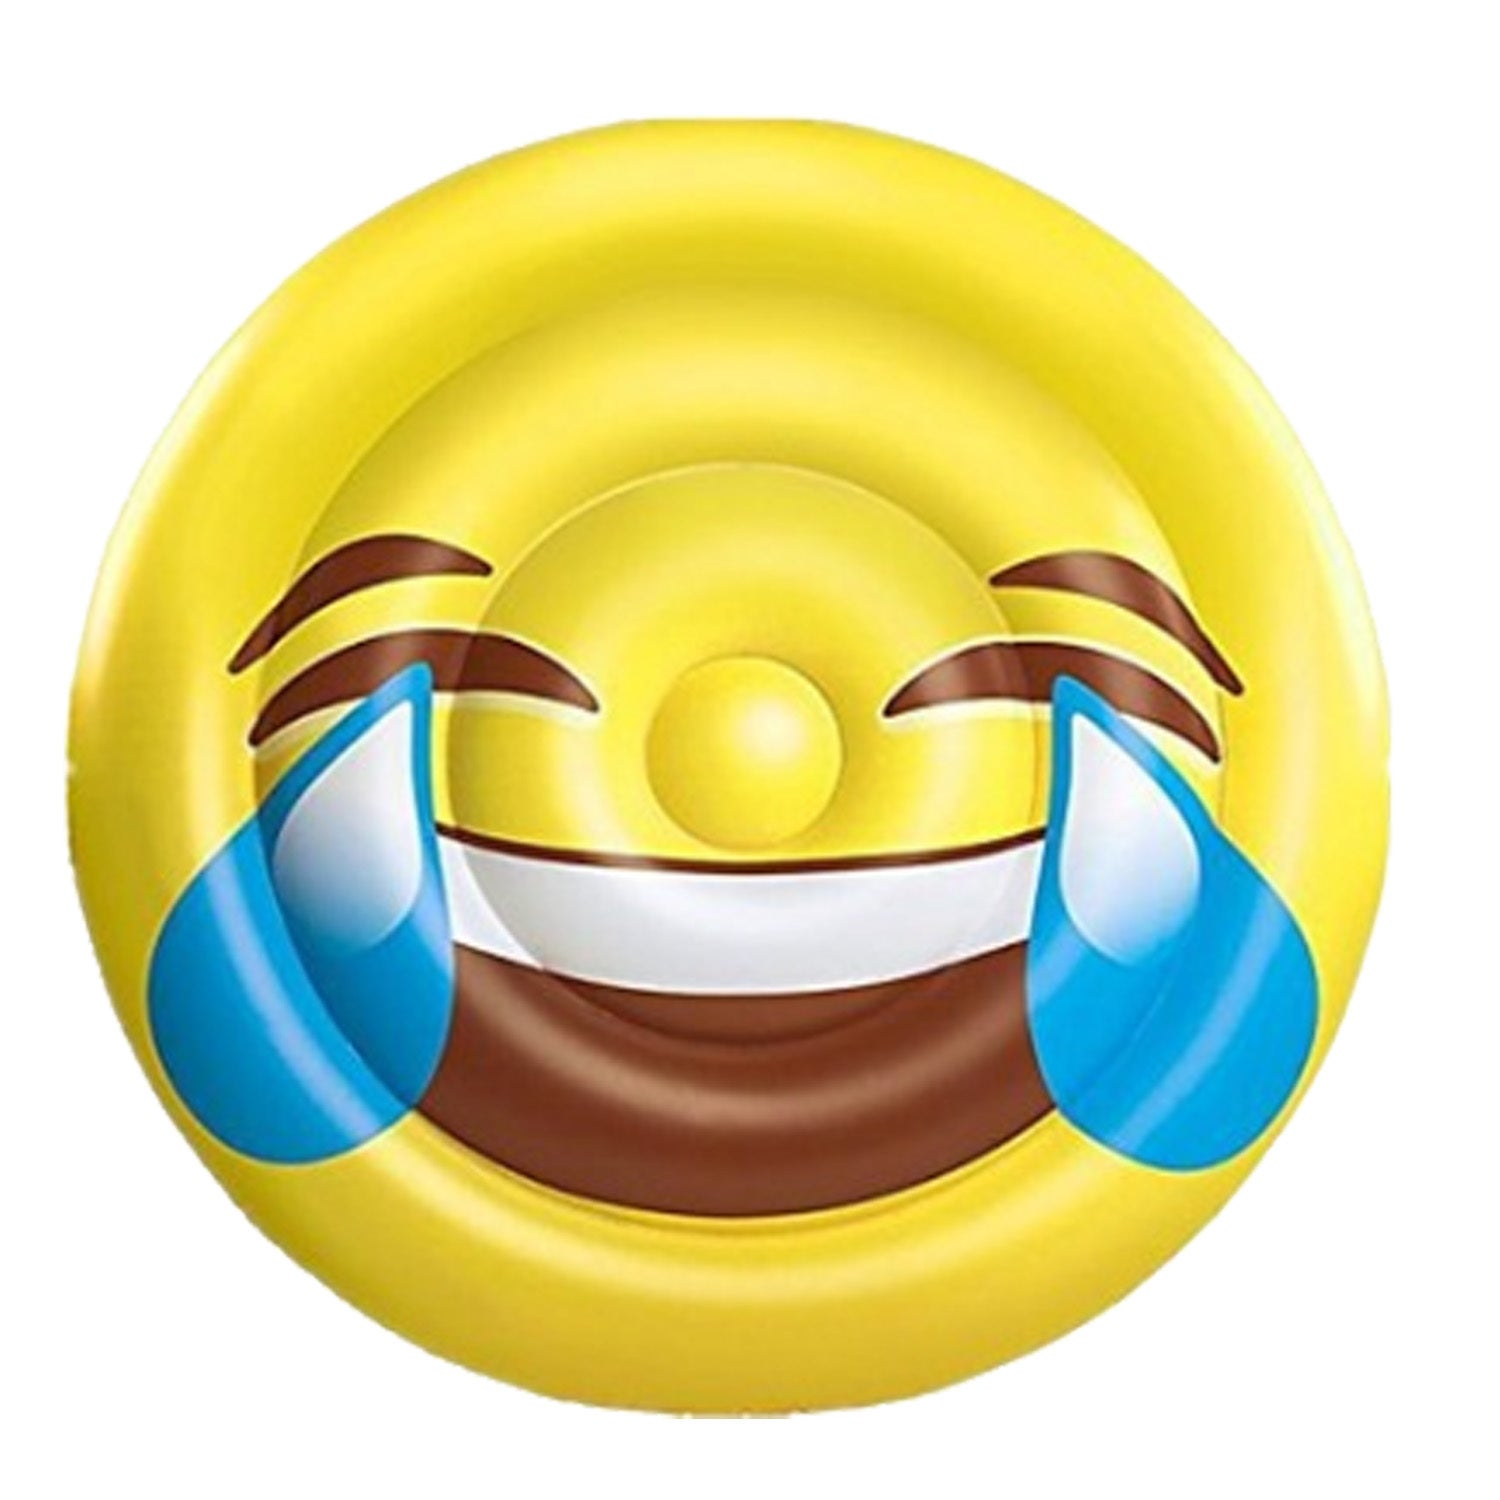 BH Inflatables: Giant Emoji Tears of Joy Inflatable Pool ...